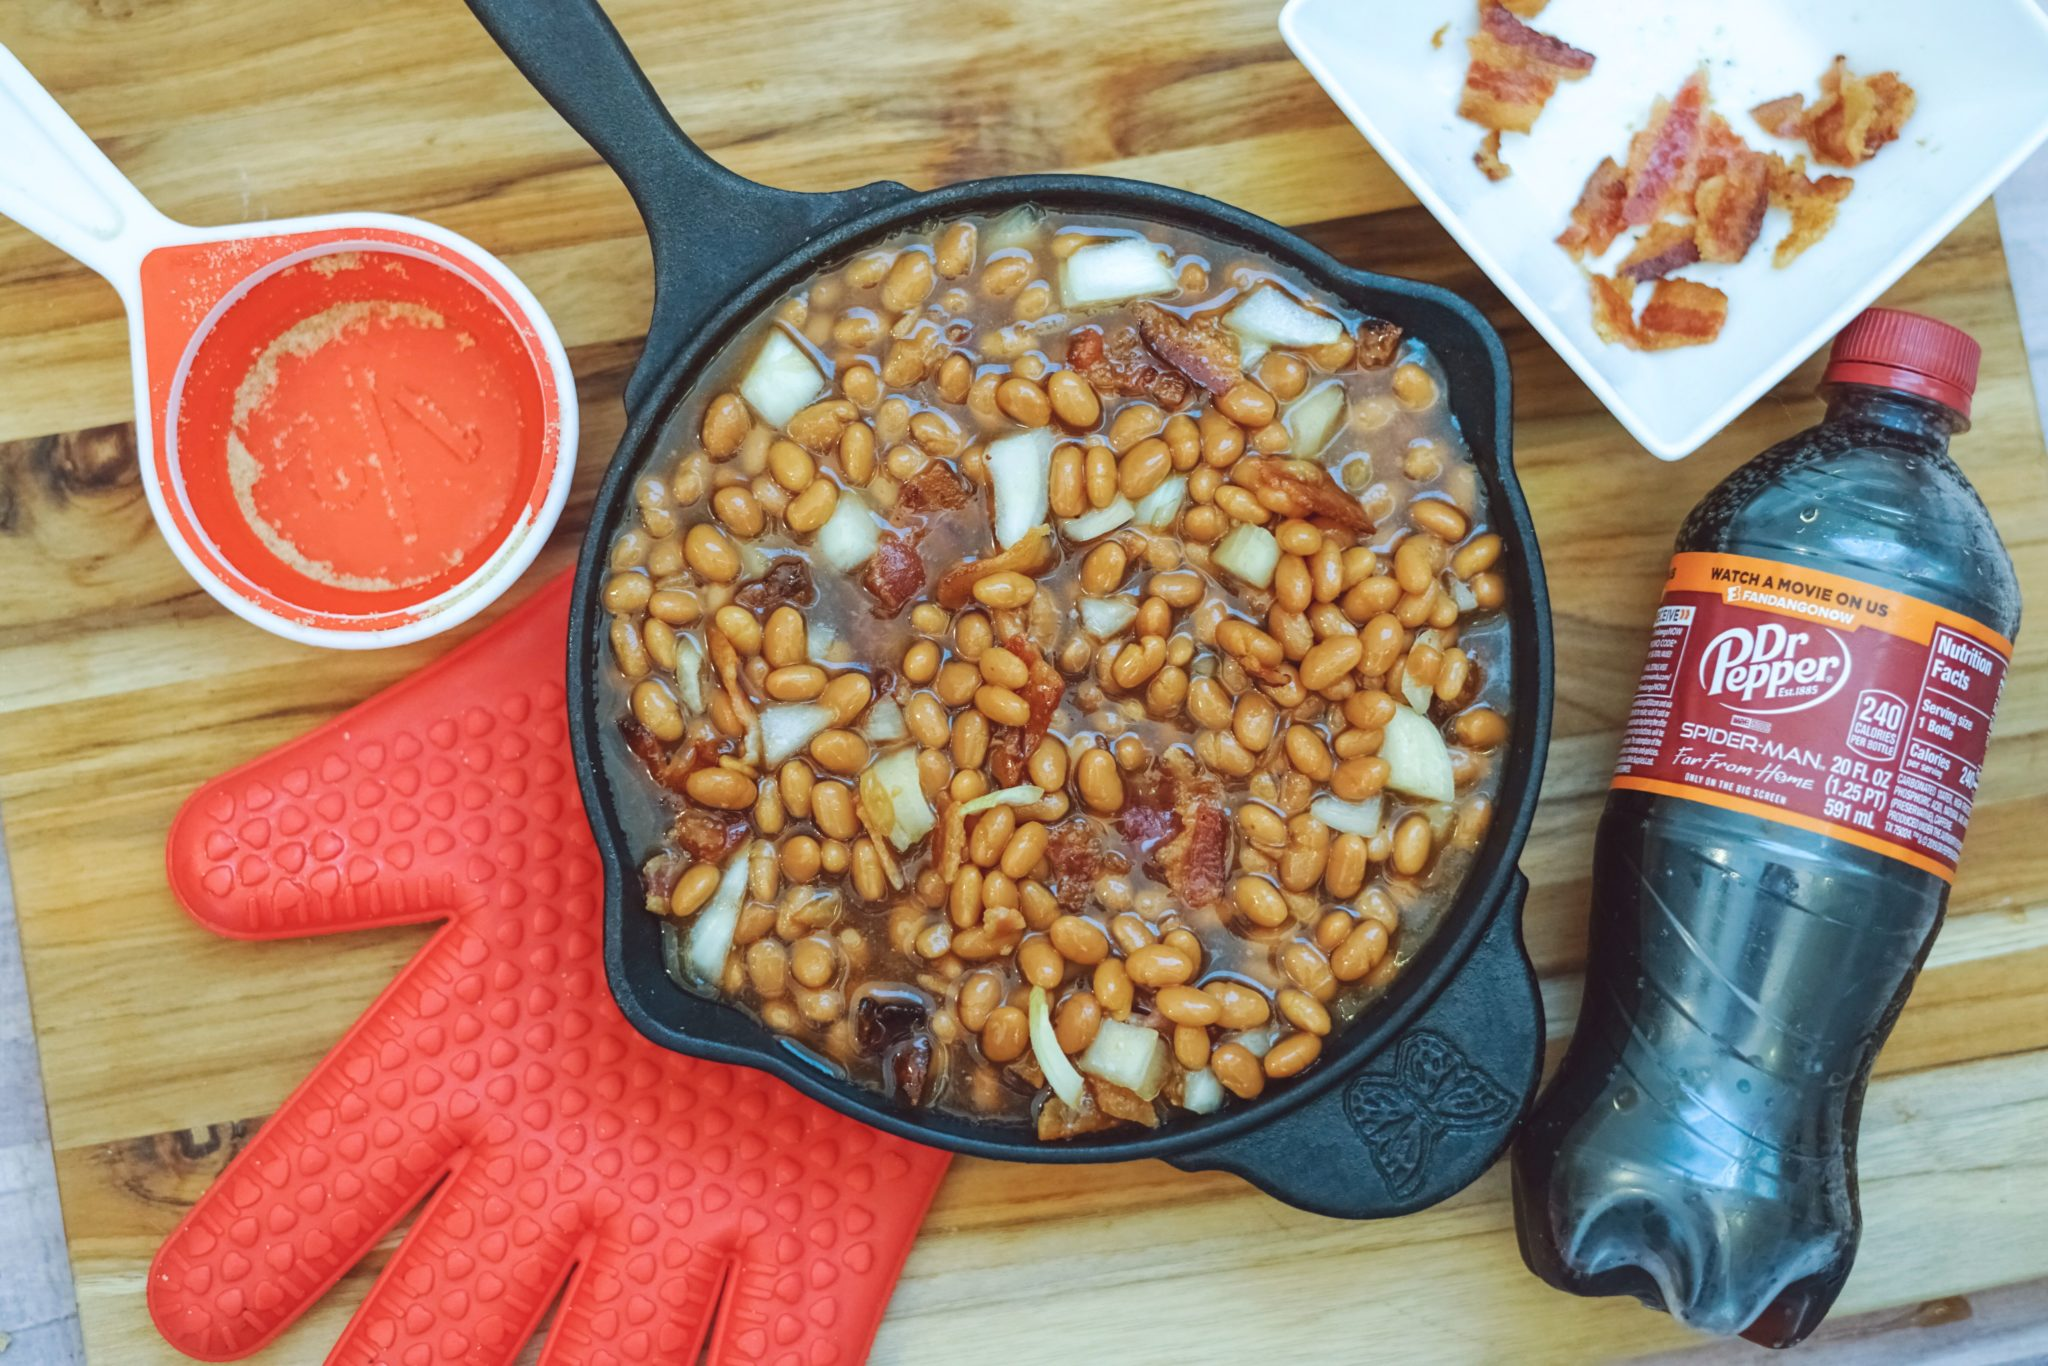 These Dr. Pepper Baked Beans are sweet, delicious and ready in about an hour! They make the perfect meal or an awesome side dish!